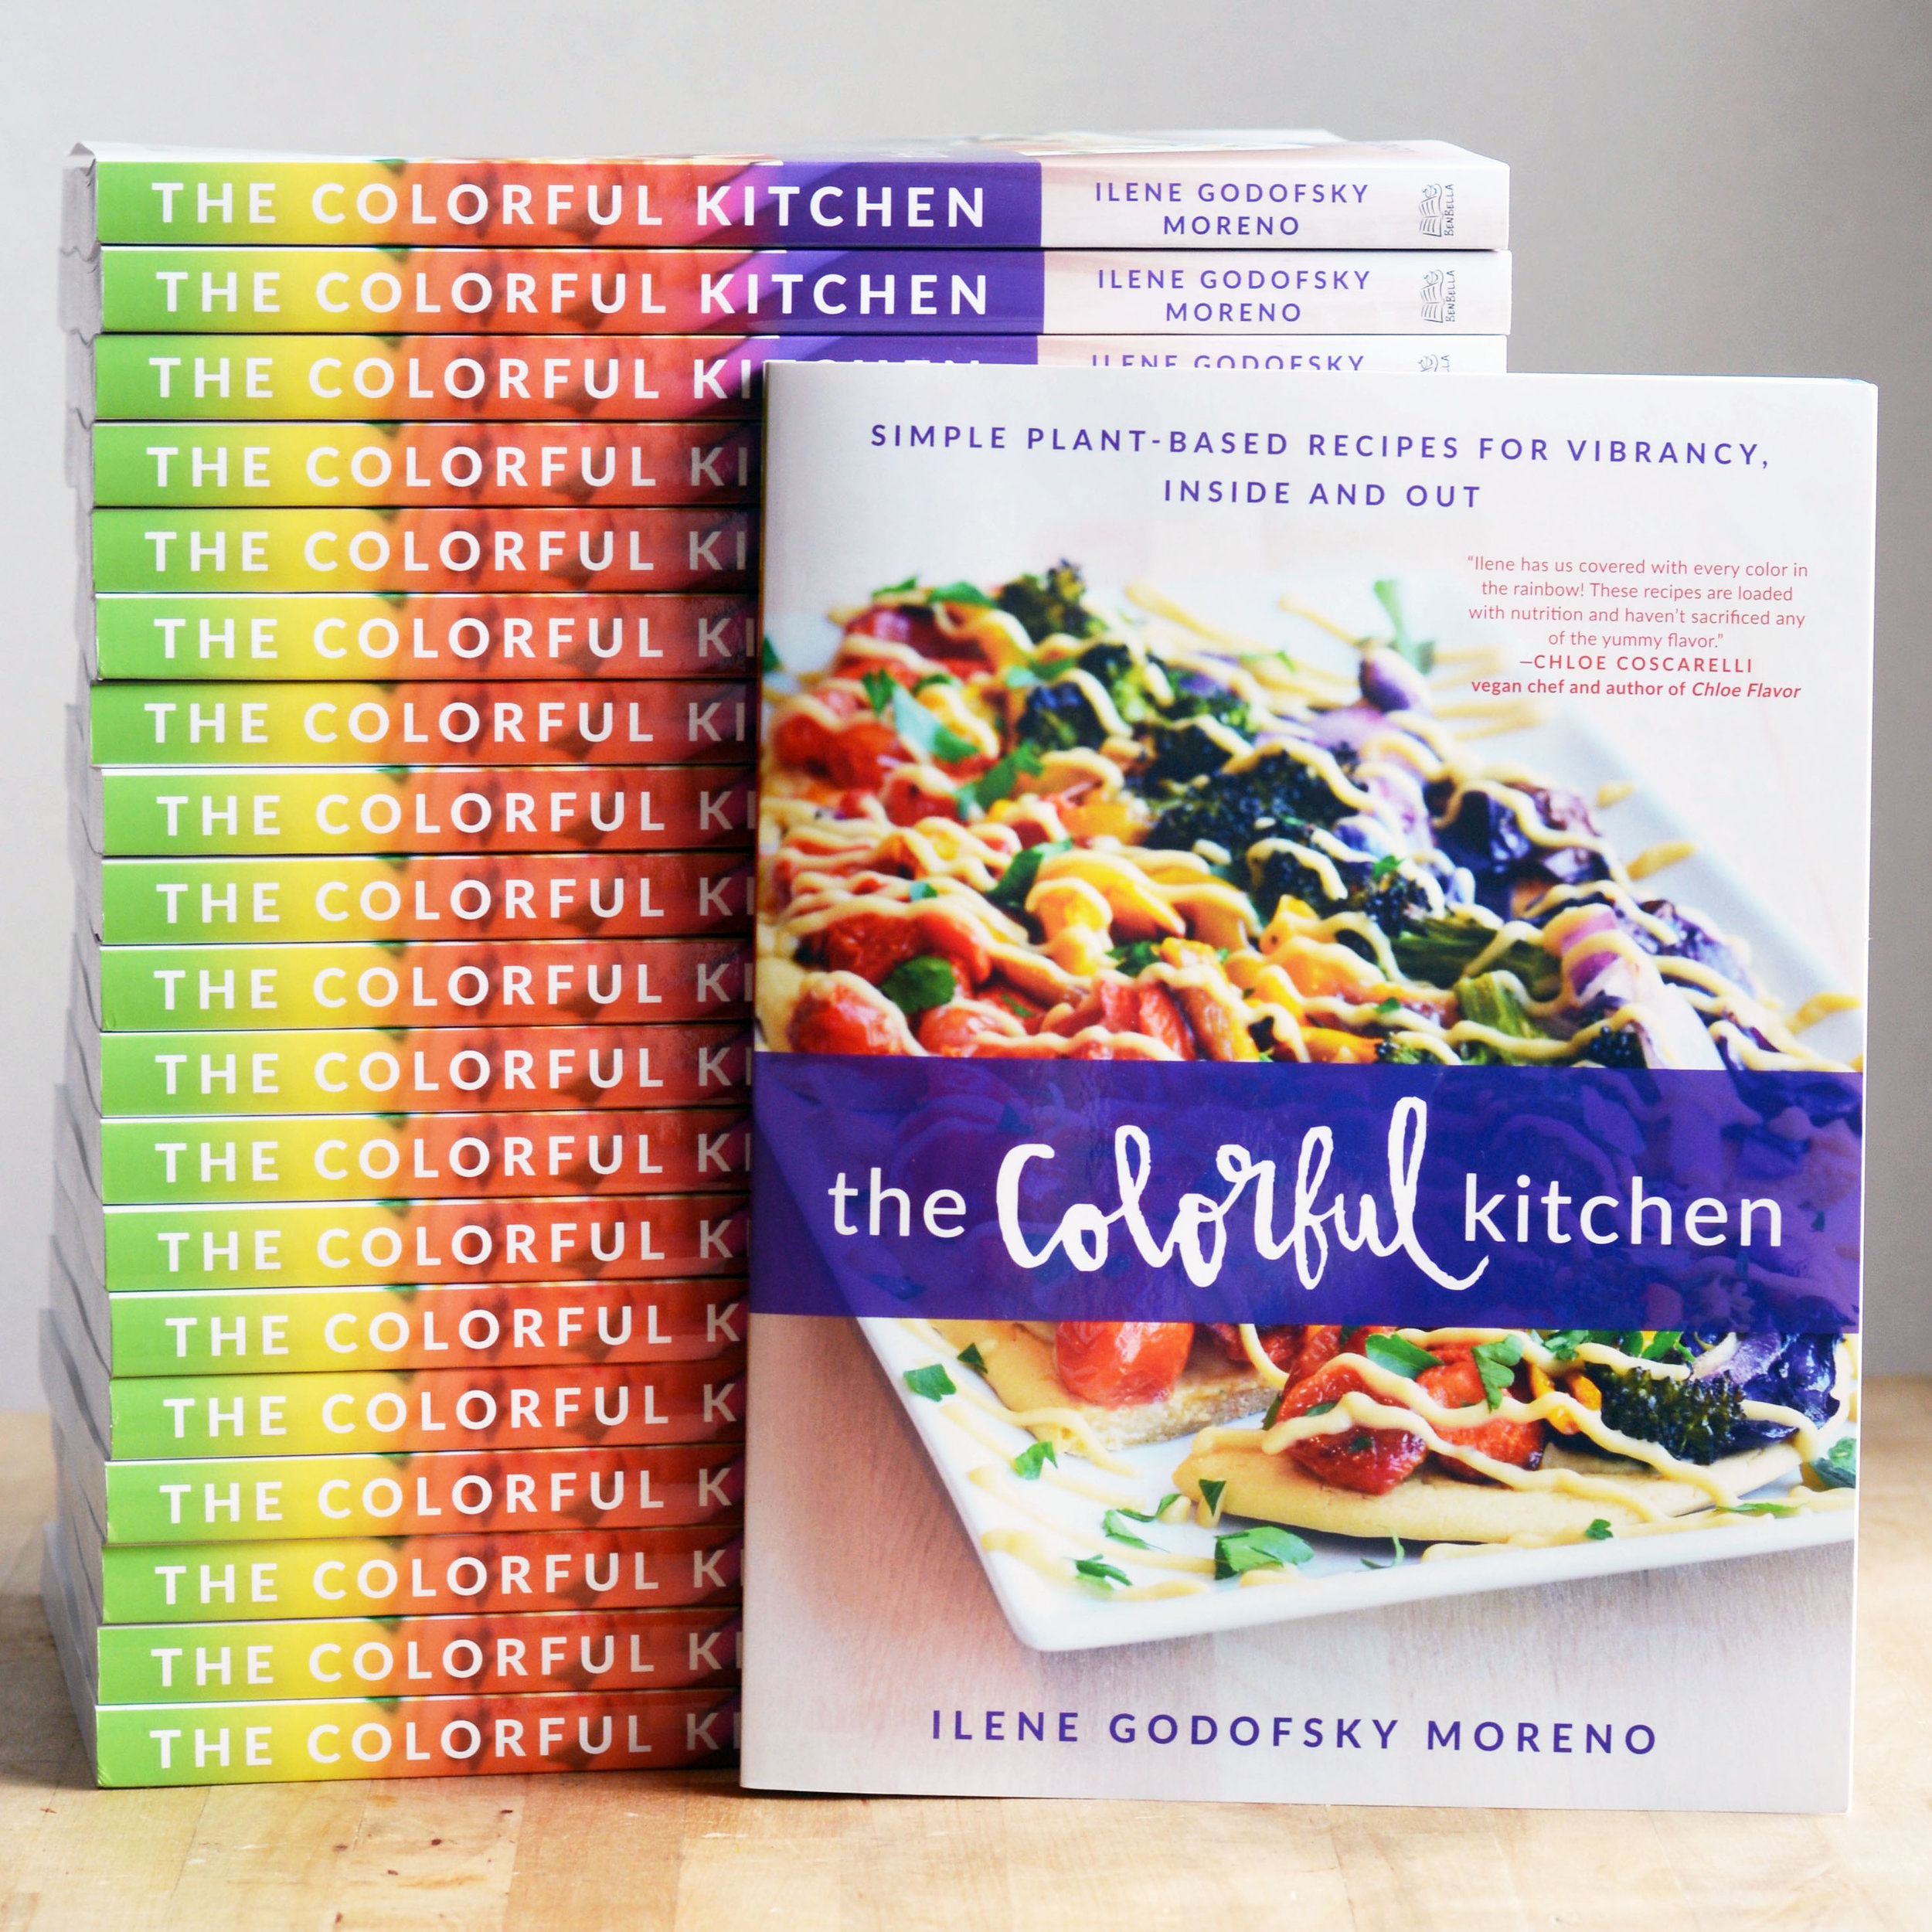 """The Colorful Kitchen proves that plant-based cooking can be delicious, easy, and totally affordable."" - - Jessica Murane, author of One Part Plant and host of the One Part Plant Podcast"